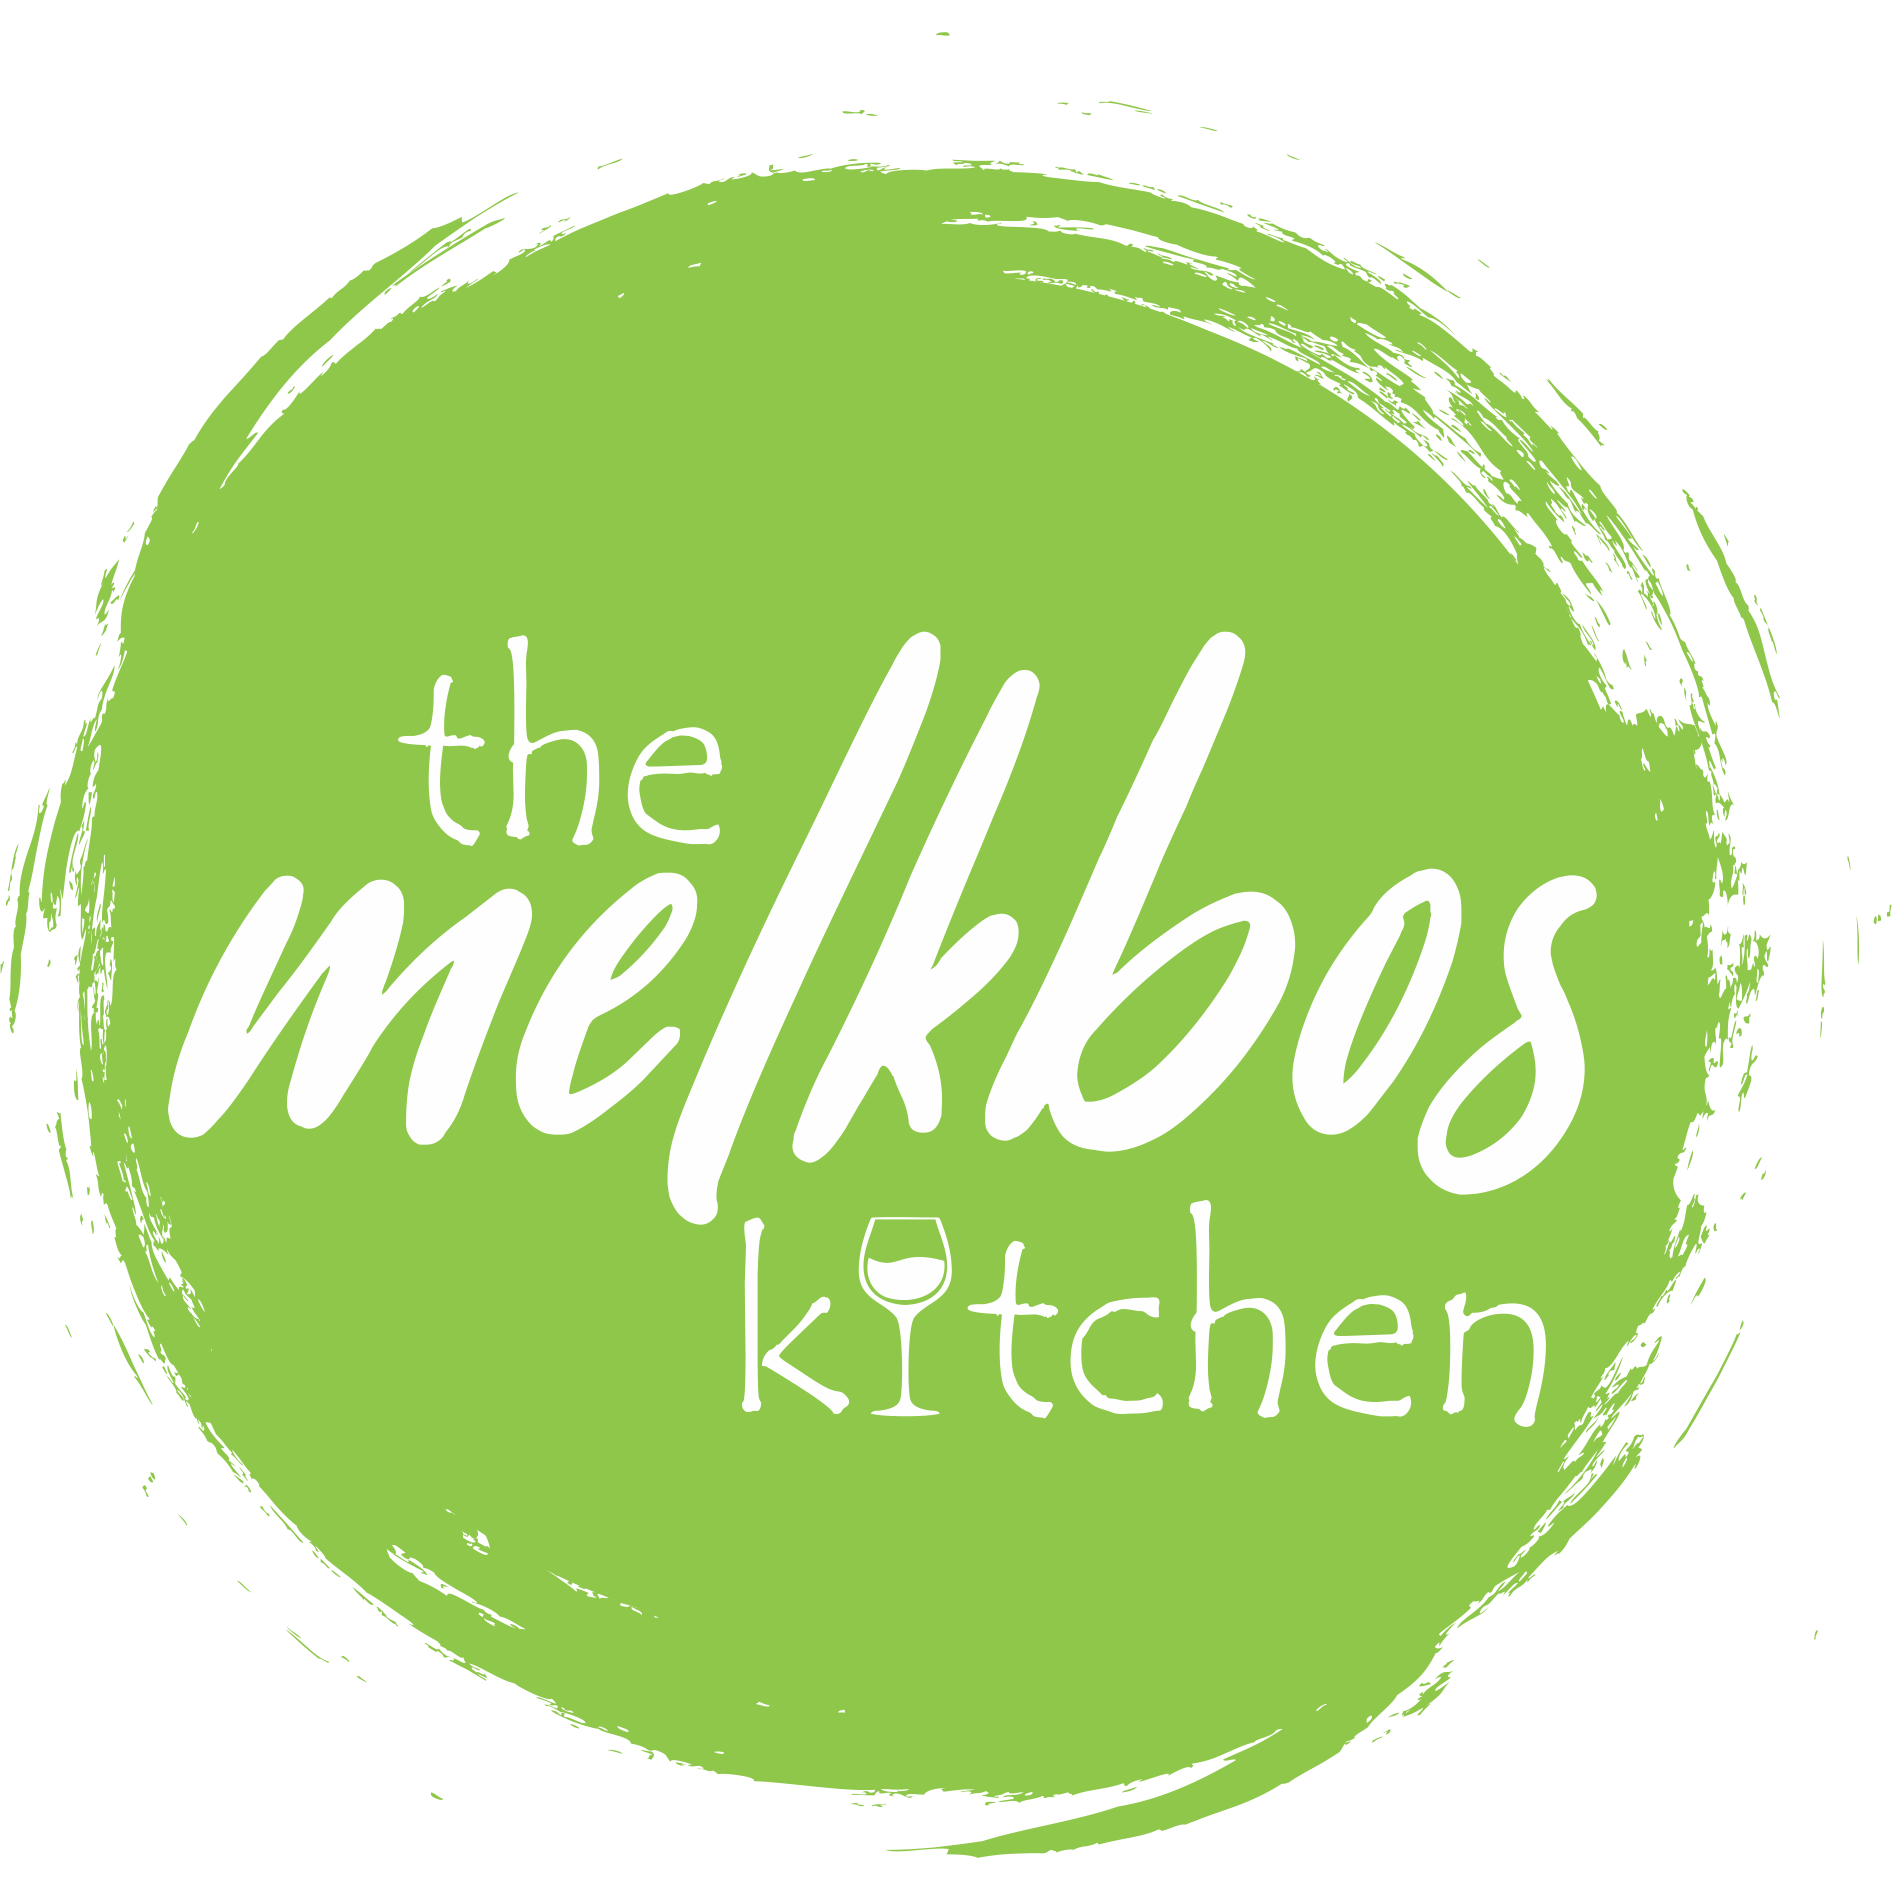 Melkbos Kitchen